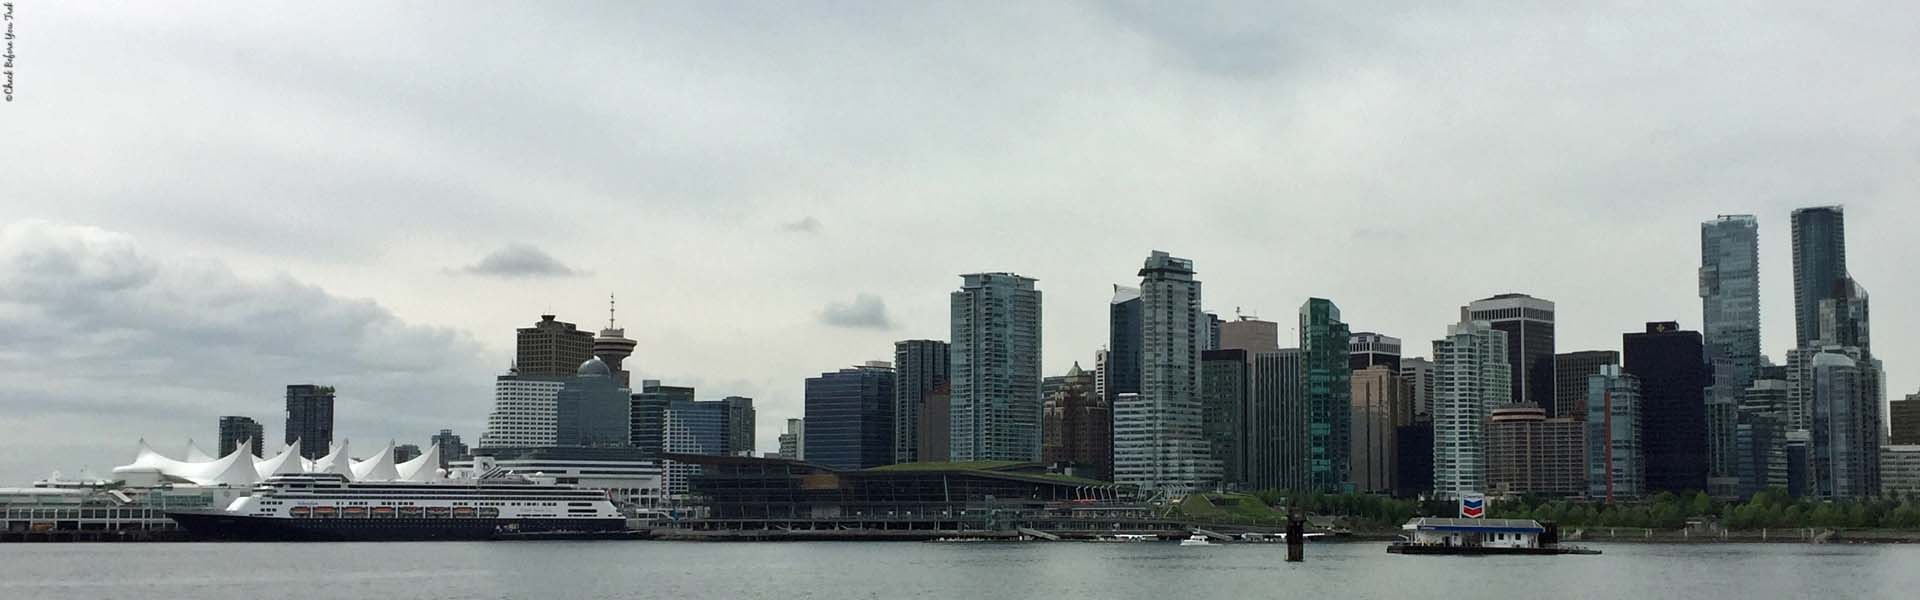 View of Vancouver from Stanley Park - Vancouver, British Columbia, Canada